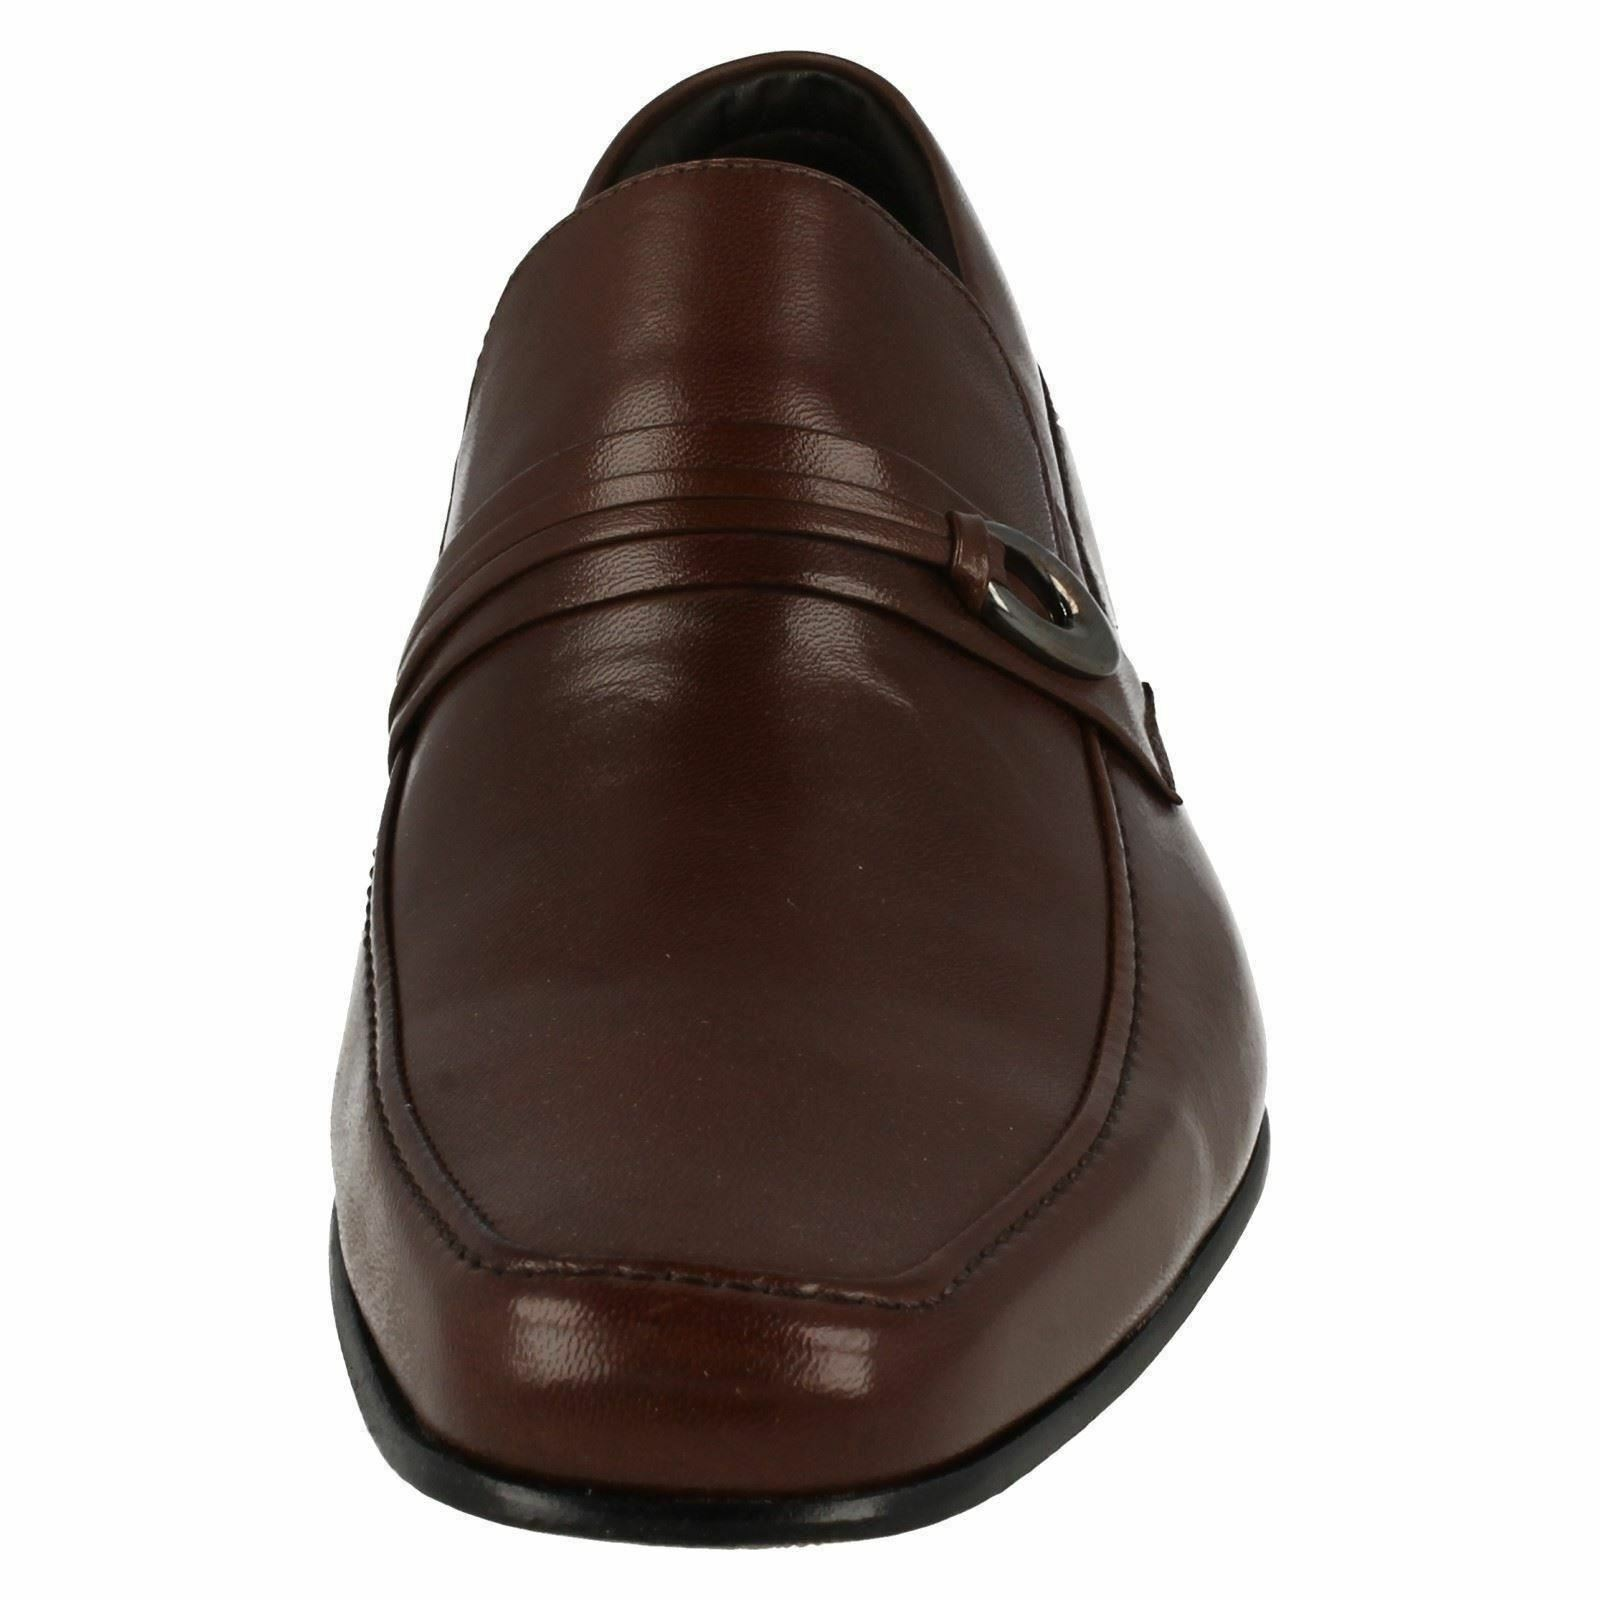 Mens Leather Anatomic Prime Goiania 2 Chocolate Brown Leather Mens Smart Slip On Shoes ac9f69